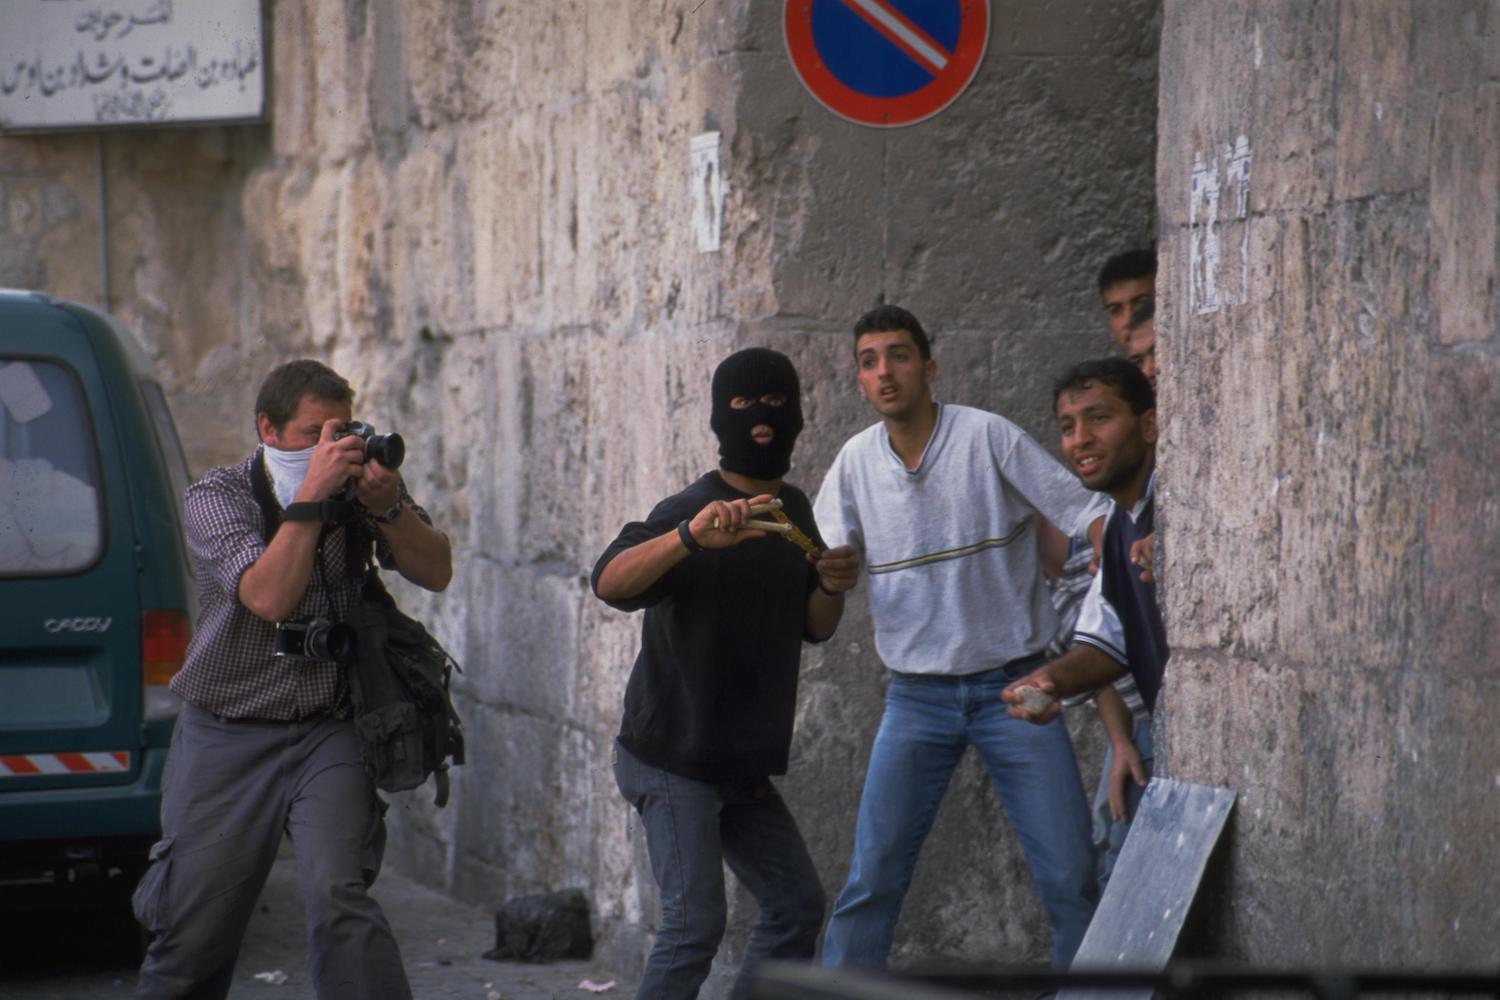 A photographer takes photos of Palestinian protesters during the Second Intifada, near Lions' Gate in Jerusalem, October 6, 2020. (Oded Baliti/GPO)